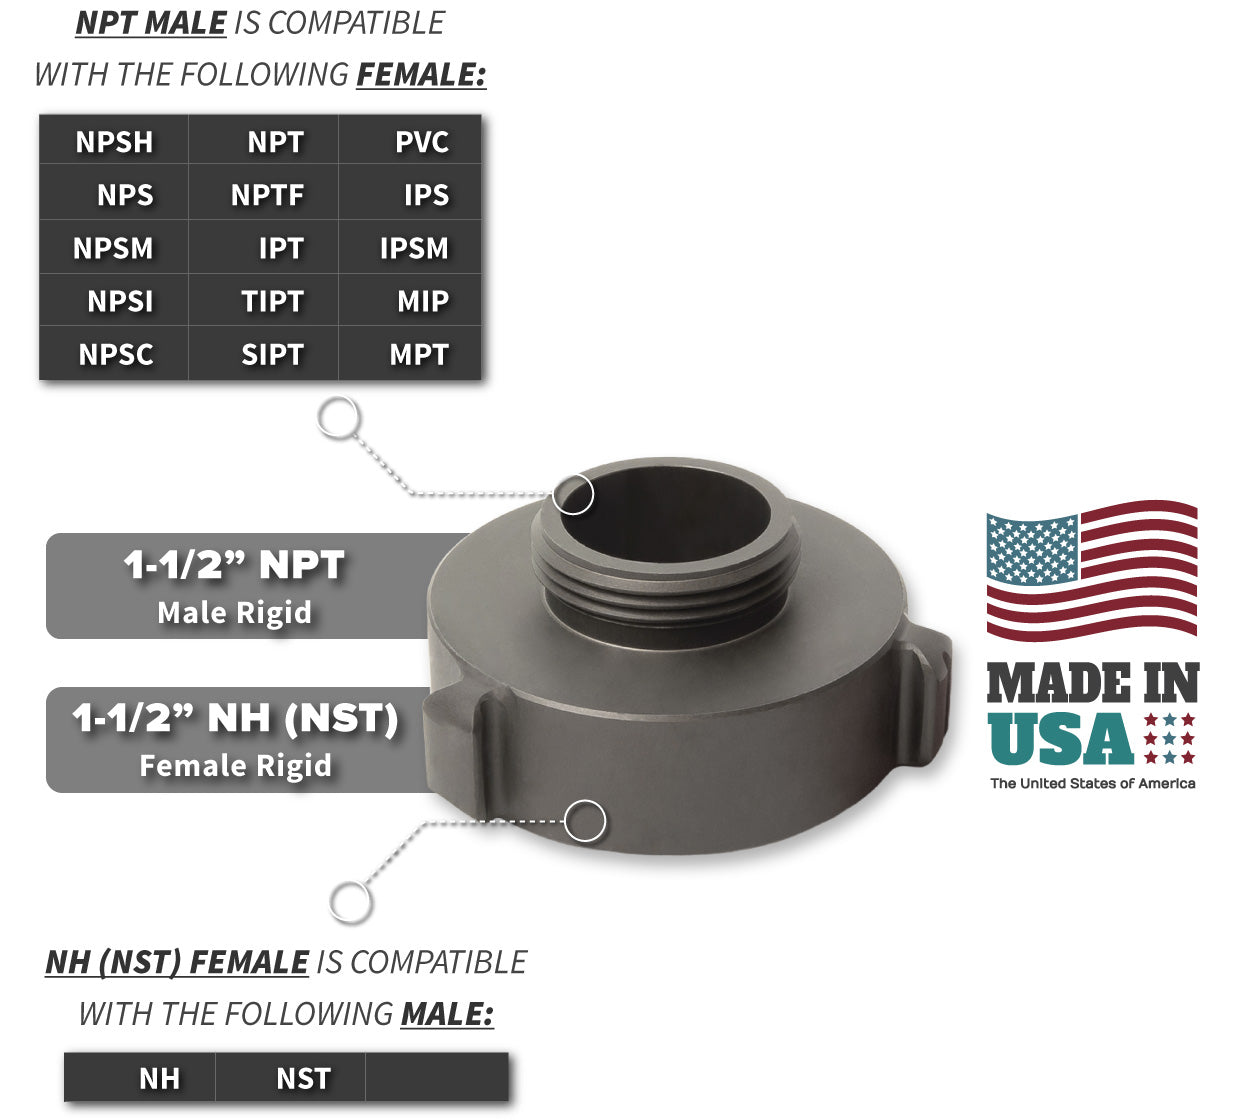 1.5 Inch NH-NST Female x 1.5 Inch NPT Male Compatibility Thread Chart